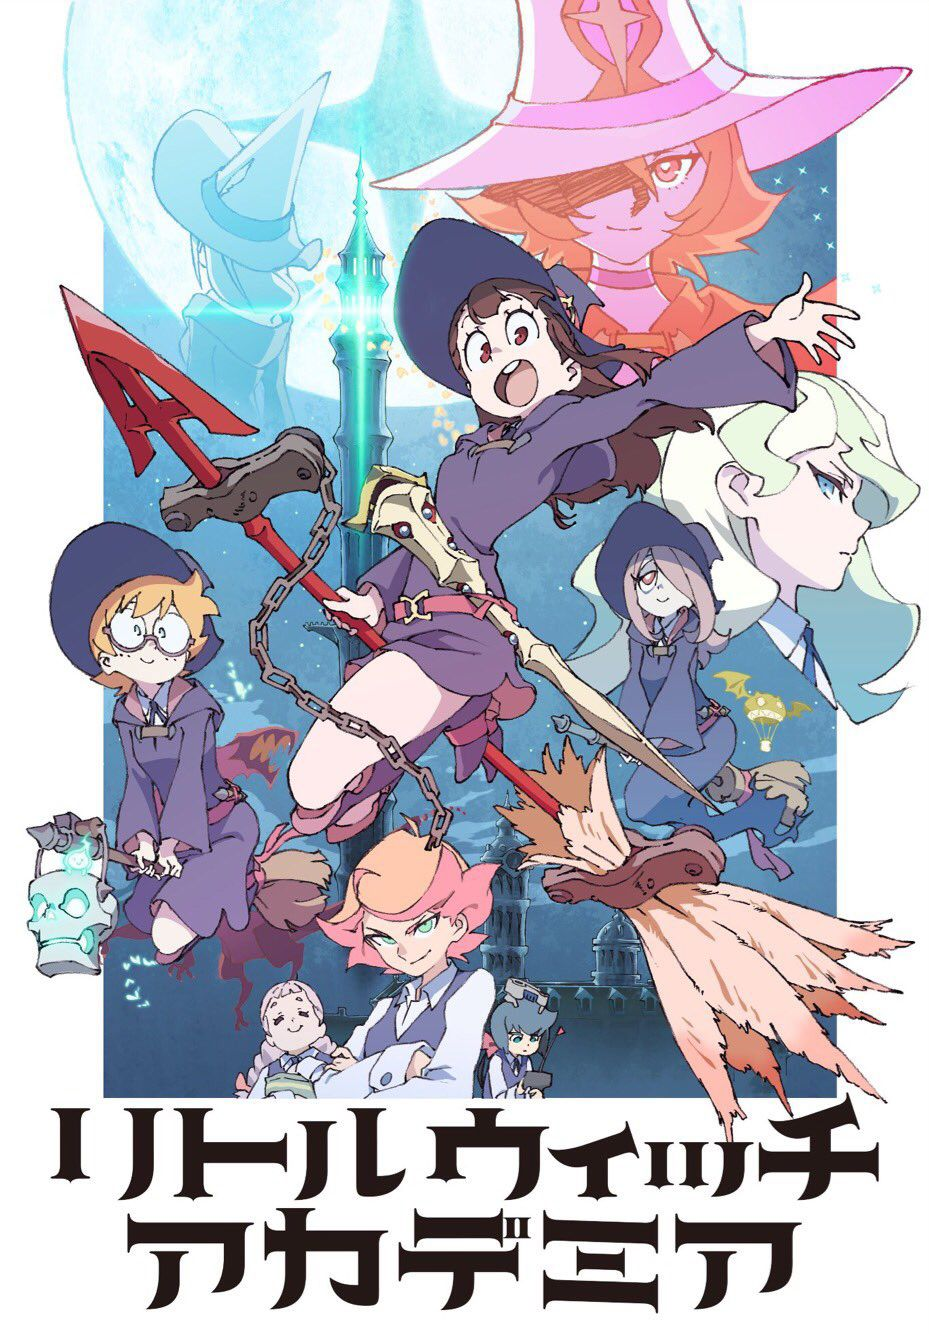 little-witch-academia-tv-anime-visual-02